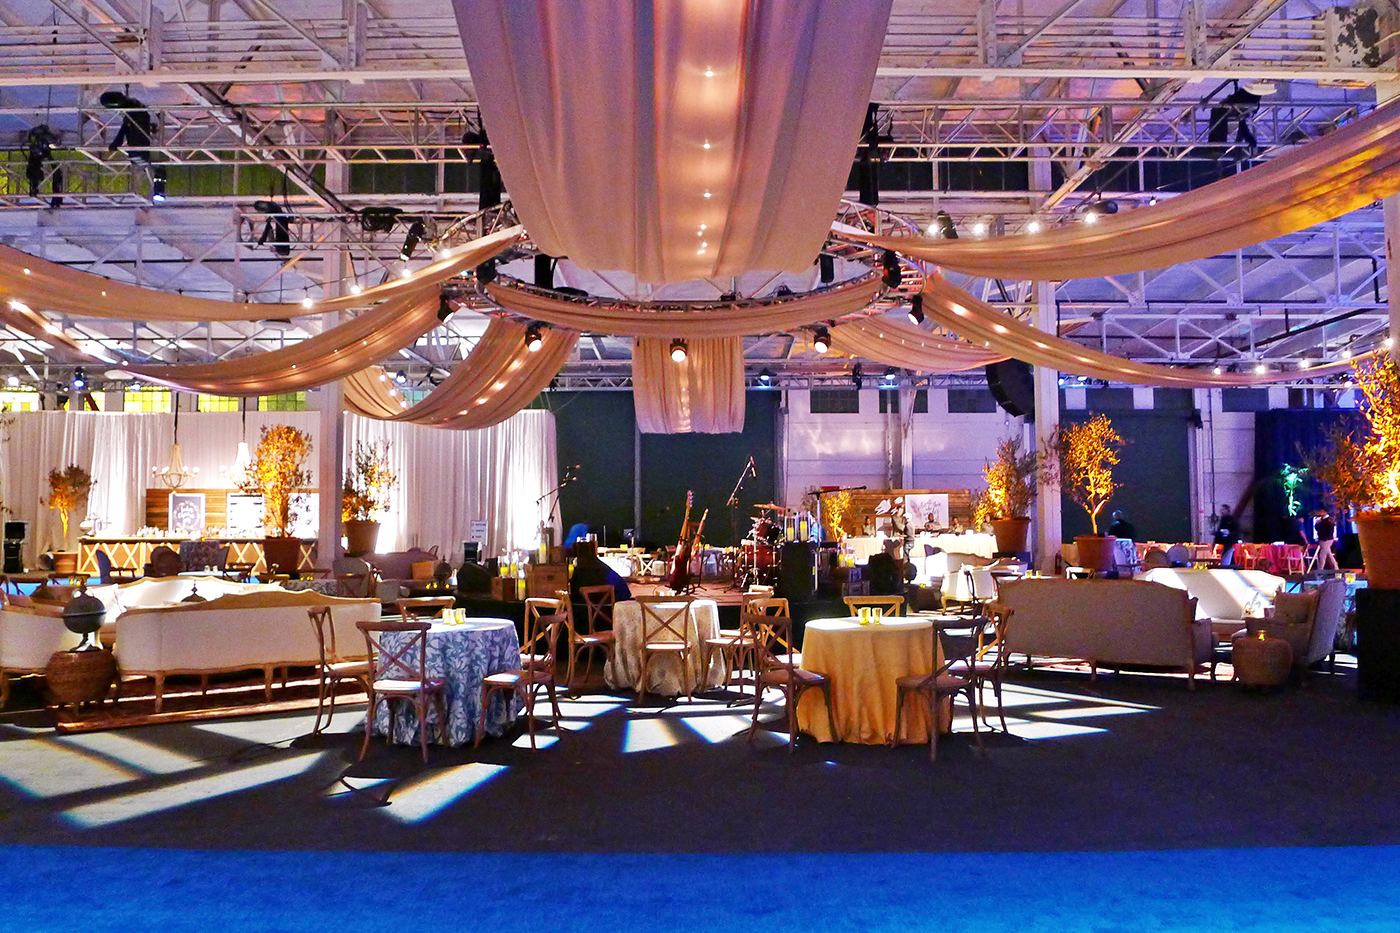 Pier 48 event venue in San Francisco